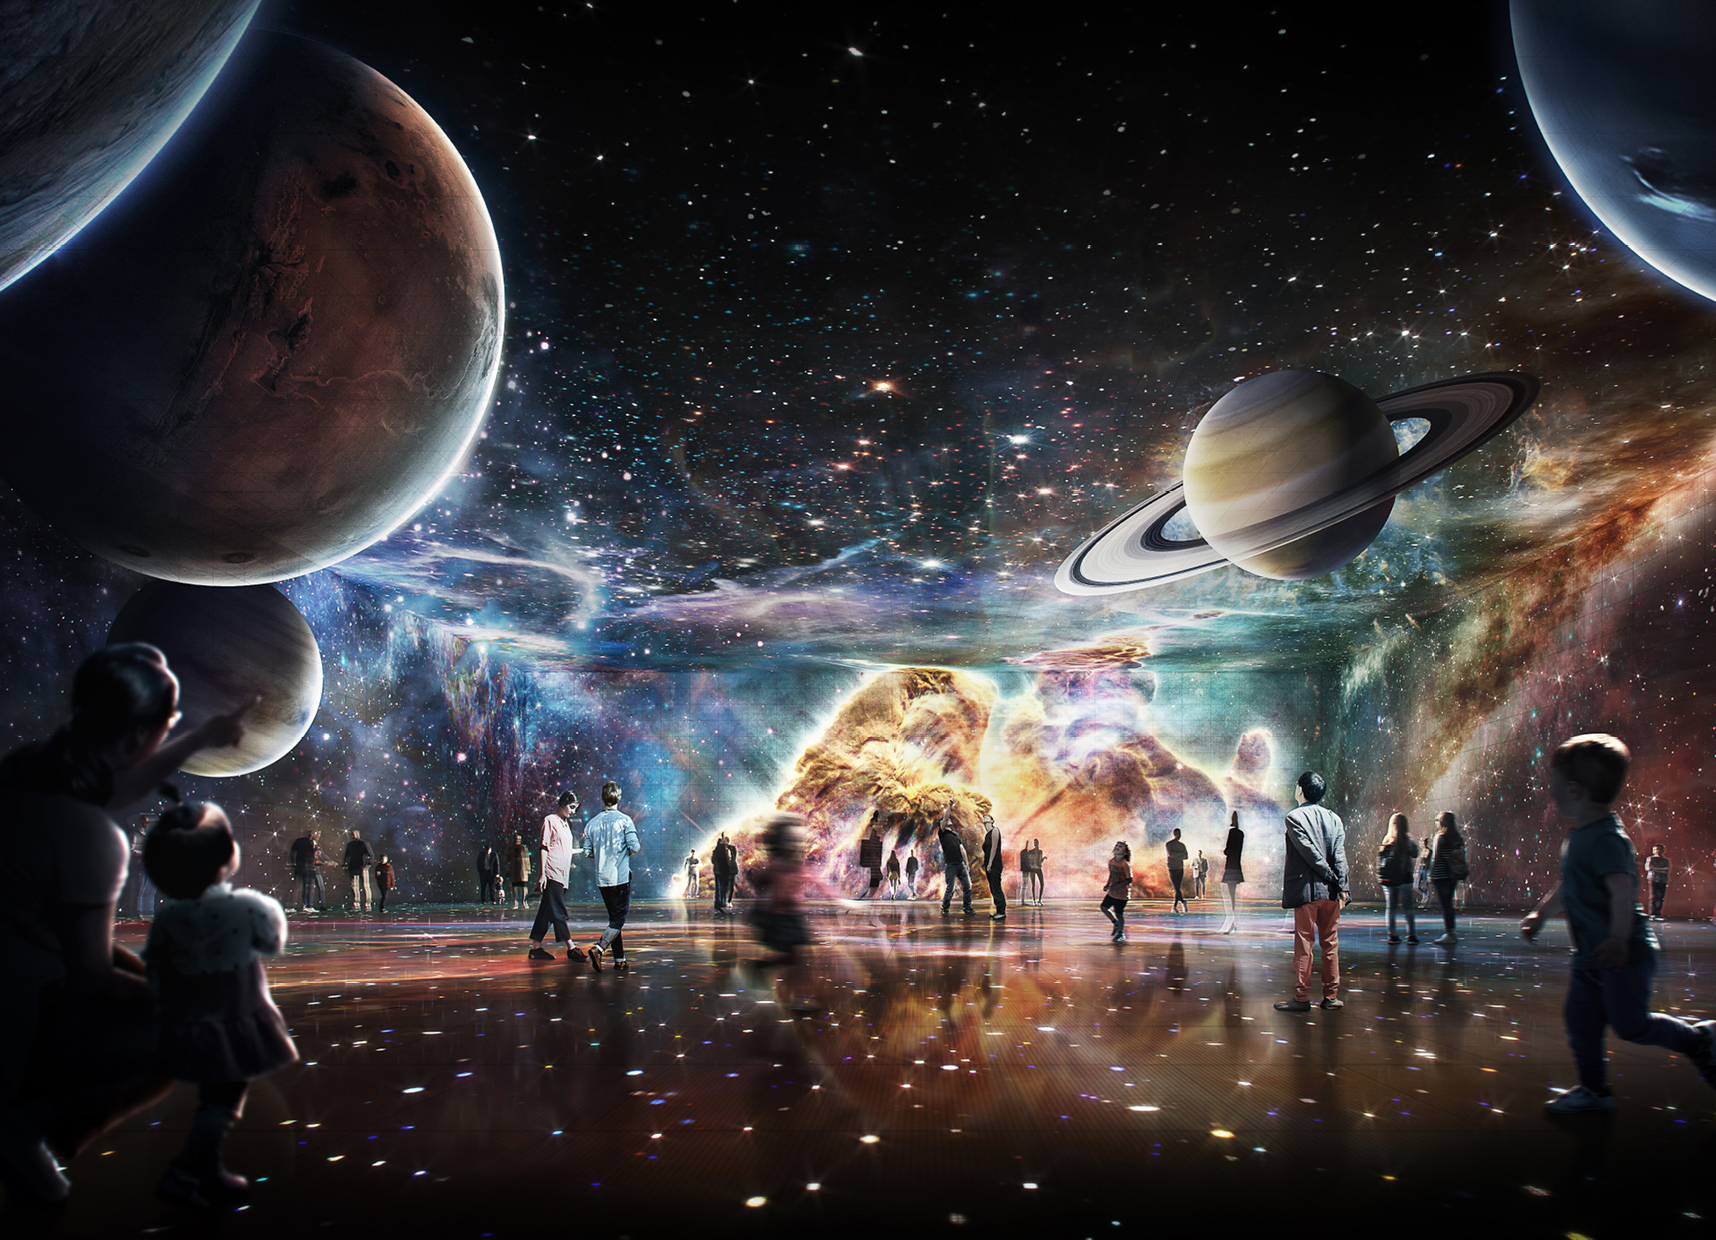 Interior artist render of people viewing planets and stars at Powerhouse Parramatta.